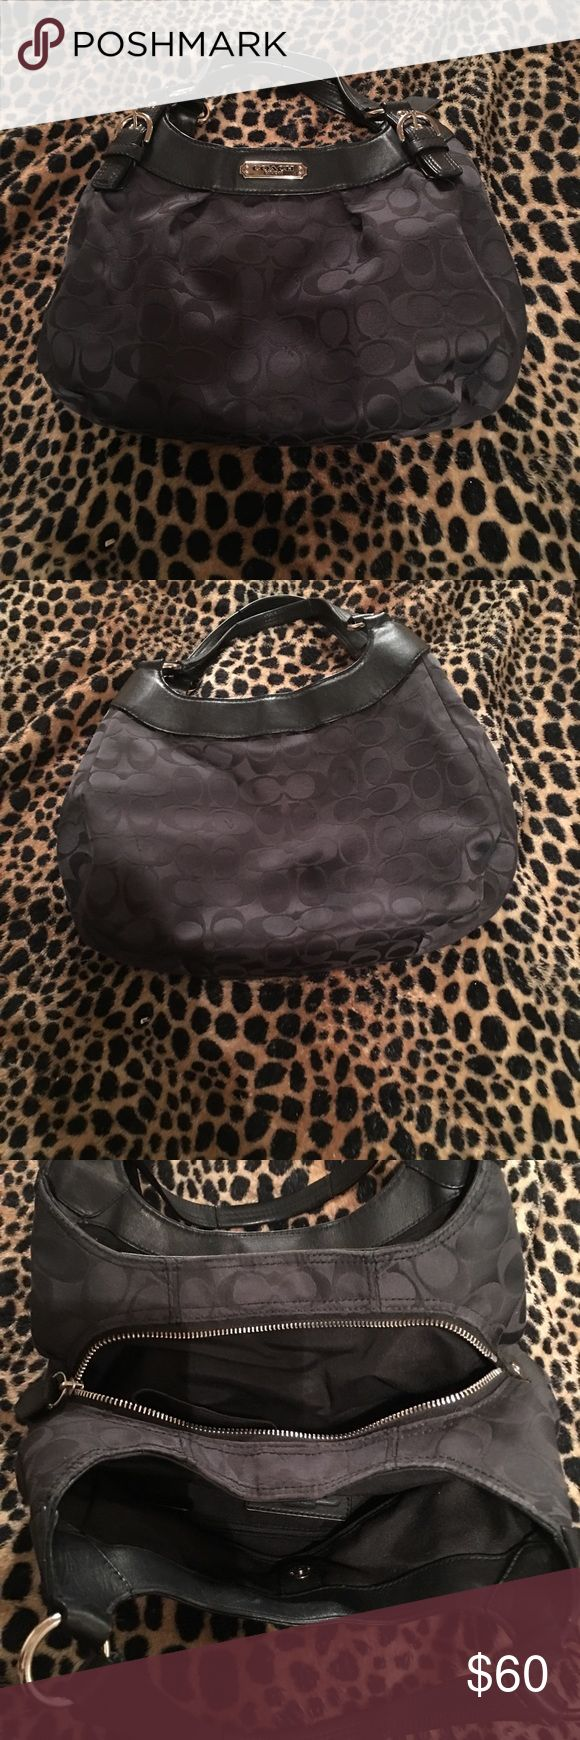 Authentic Black Coach Purse Gently used Gently used authentic black coach purse still has lots of life in it no noticeable blemishes leather has no breaks the inside is very clean. Coach Bags Shoulder Bags